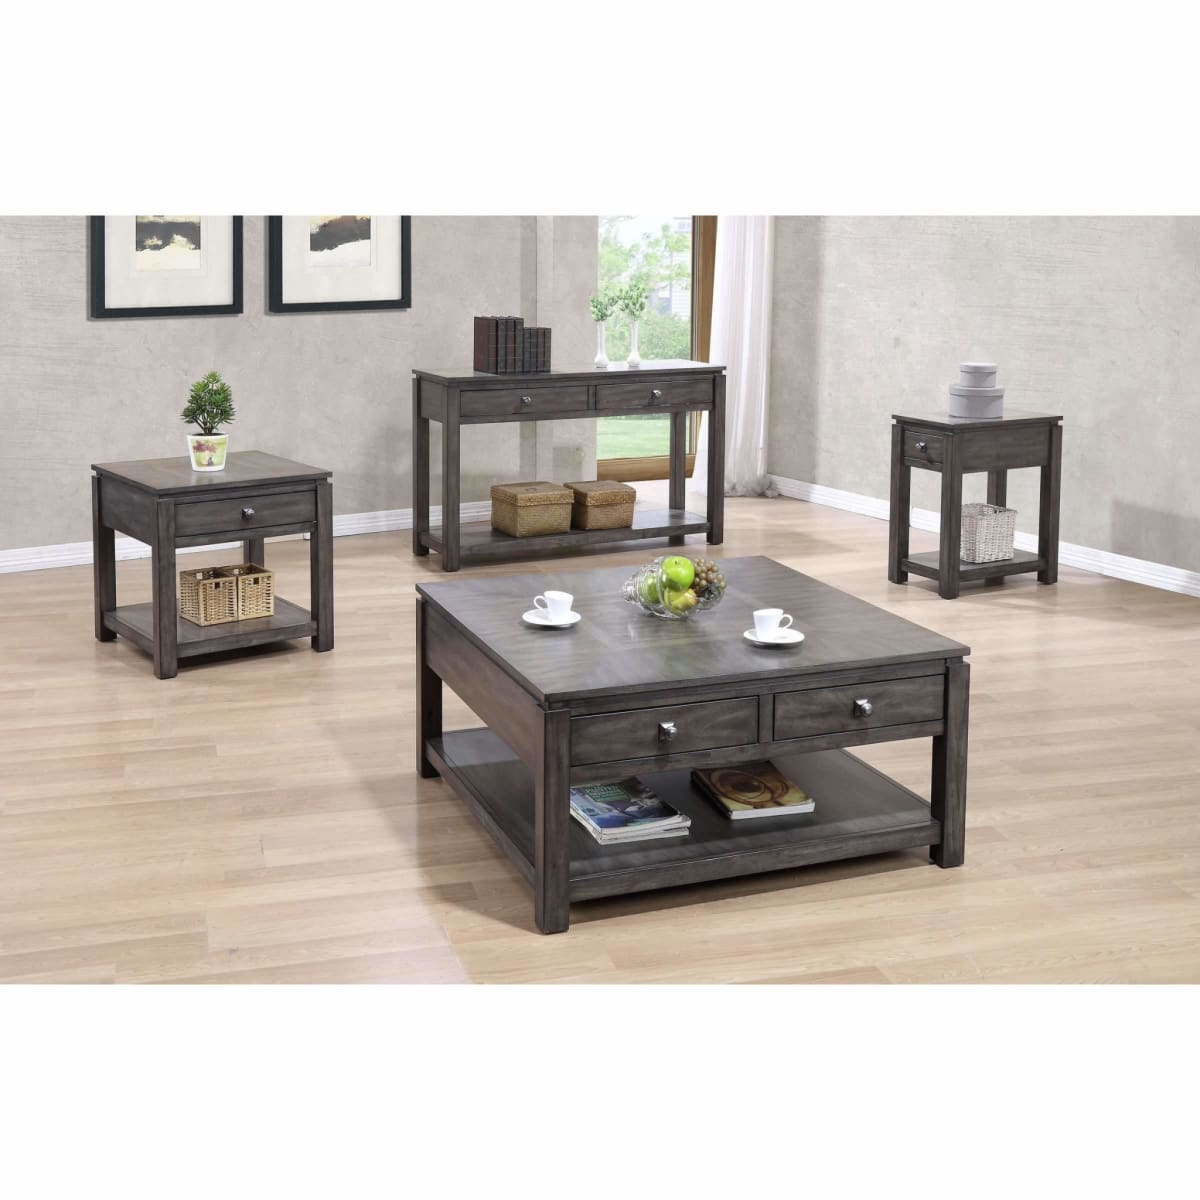 Lancaster 24 End Table - END TABLE/SIDE TABLE